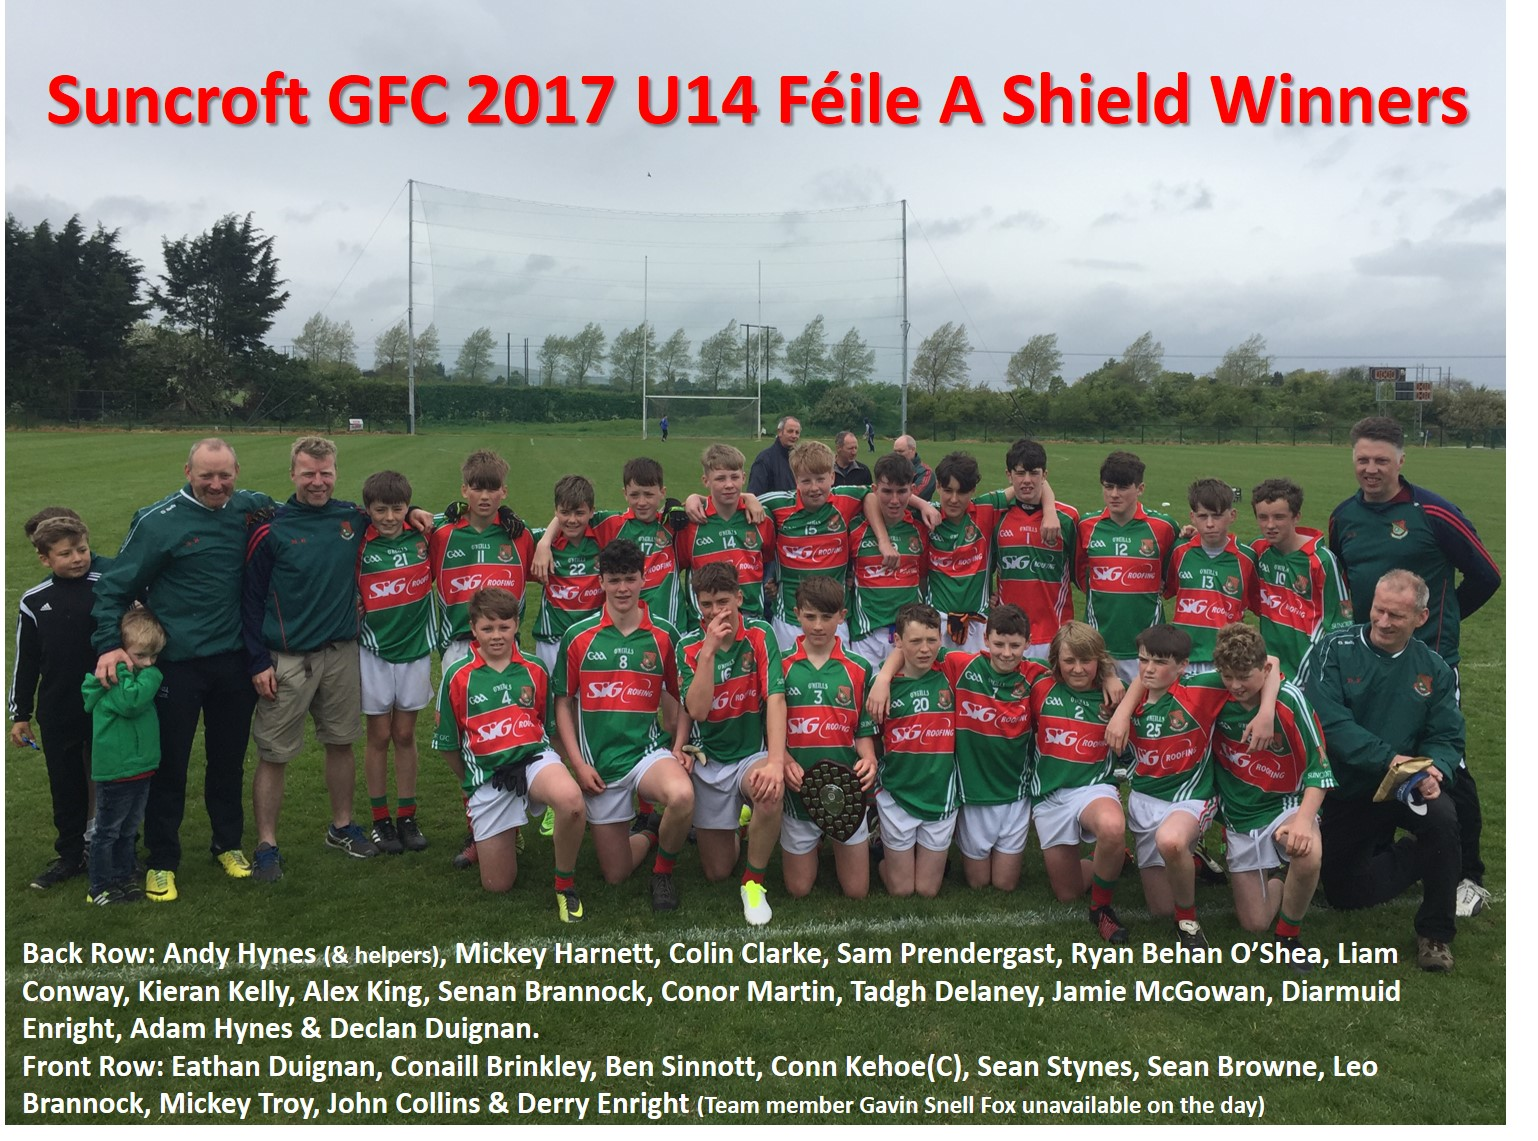 Feile A Shield Winners